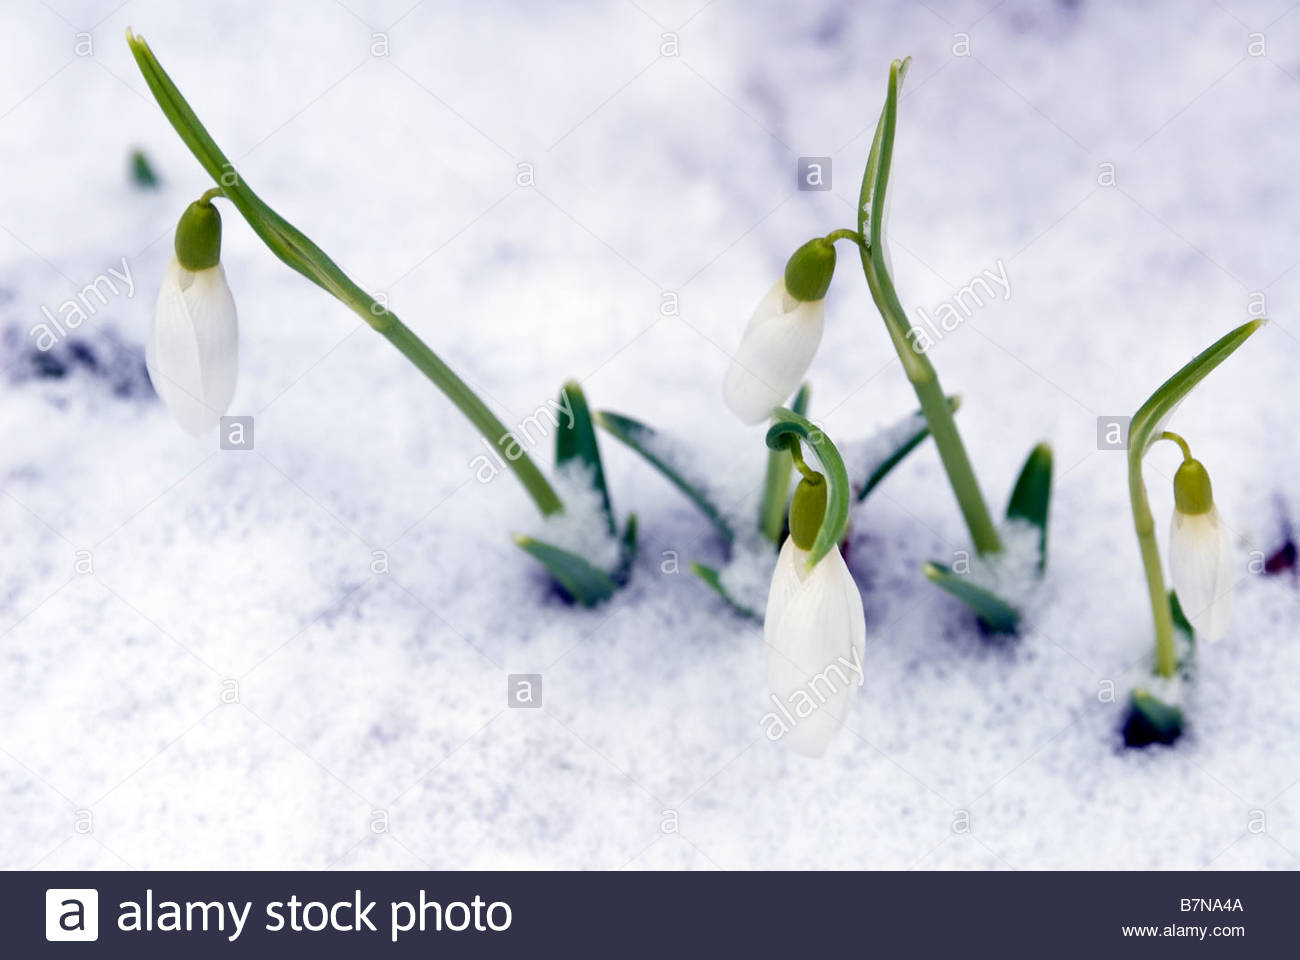 Galanthus elwesii snowdrop flowers poking through a snowfall in a UK garden. Snowdrops flowering in snow. - Stock Image